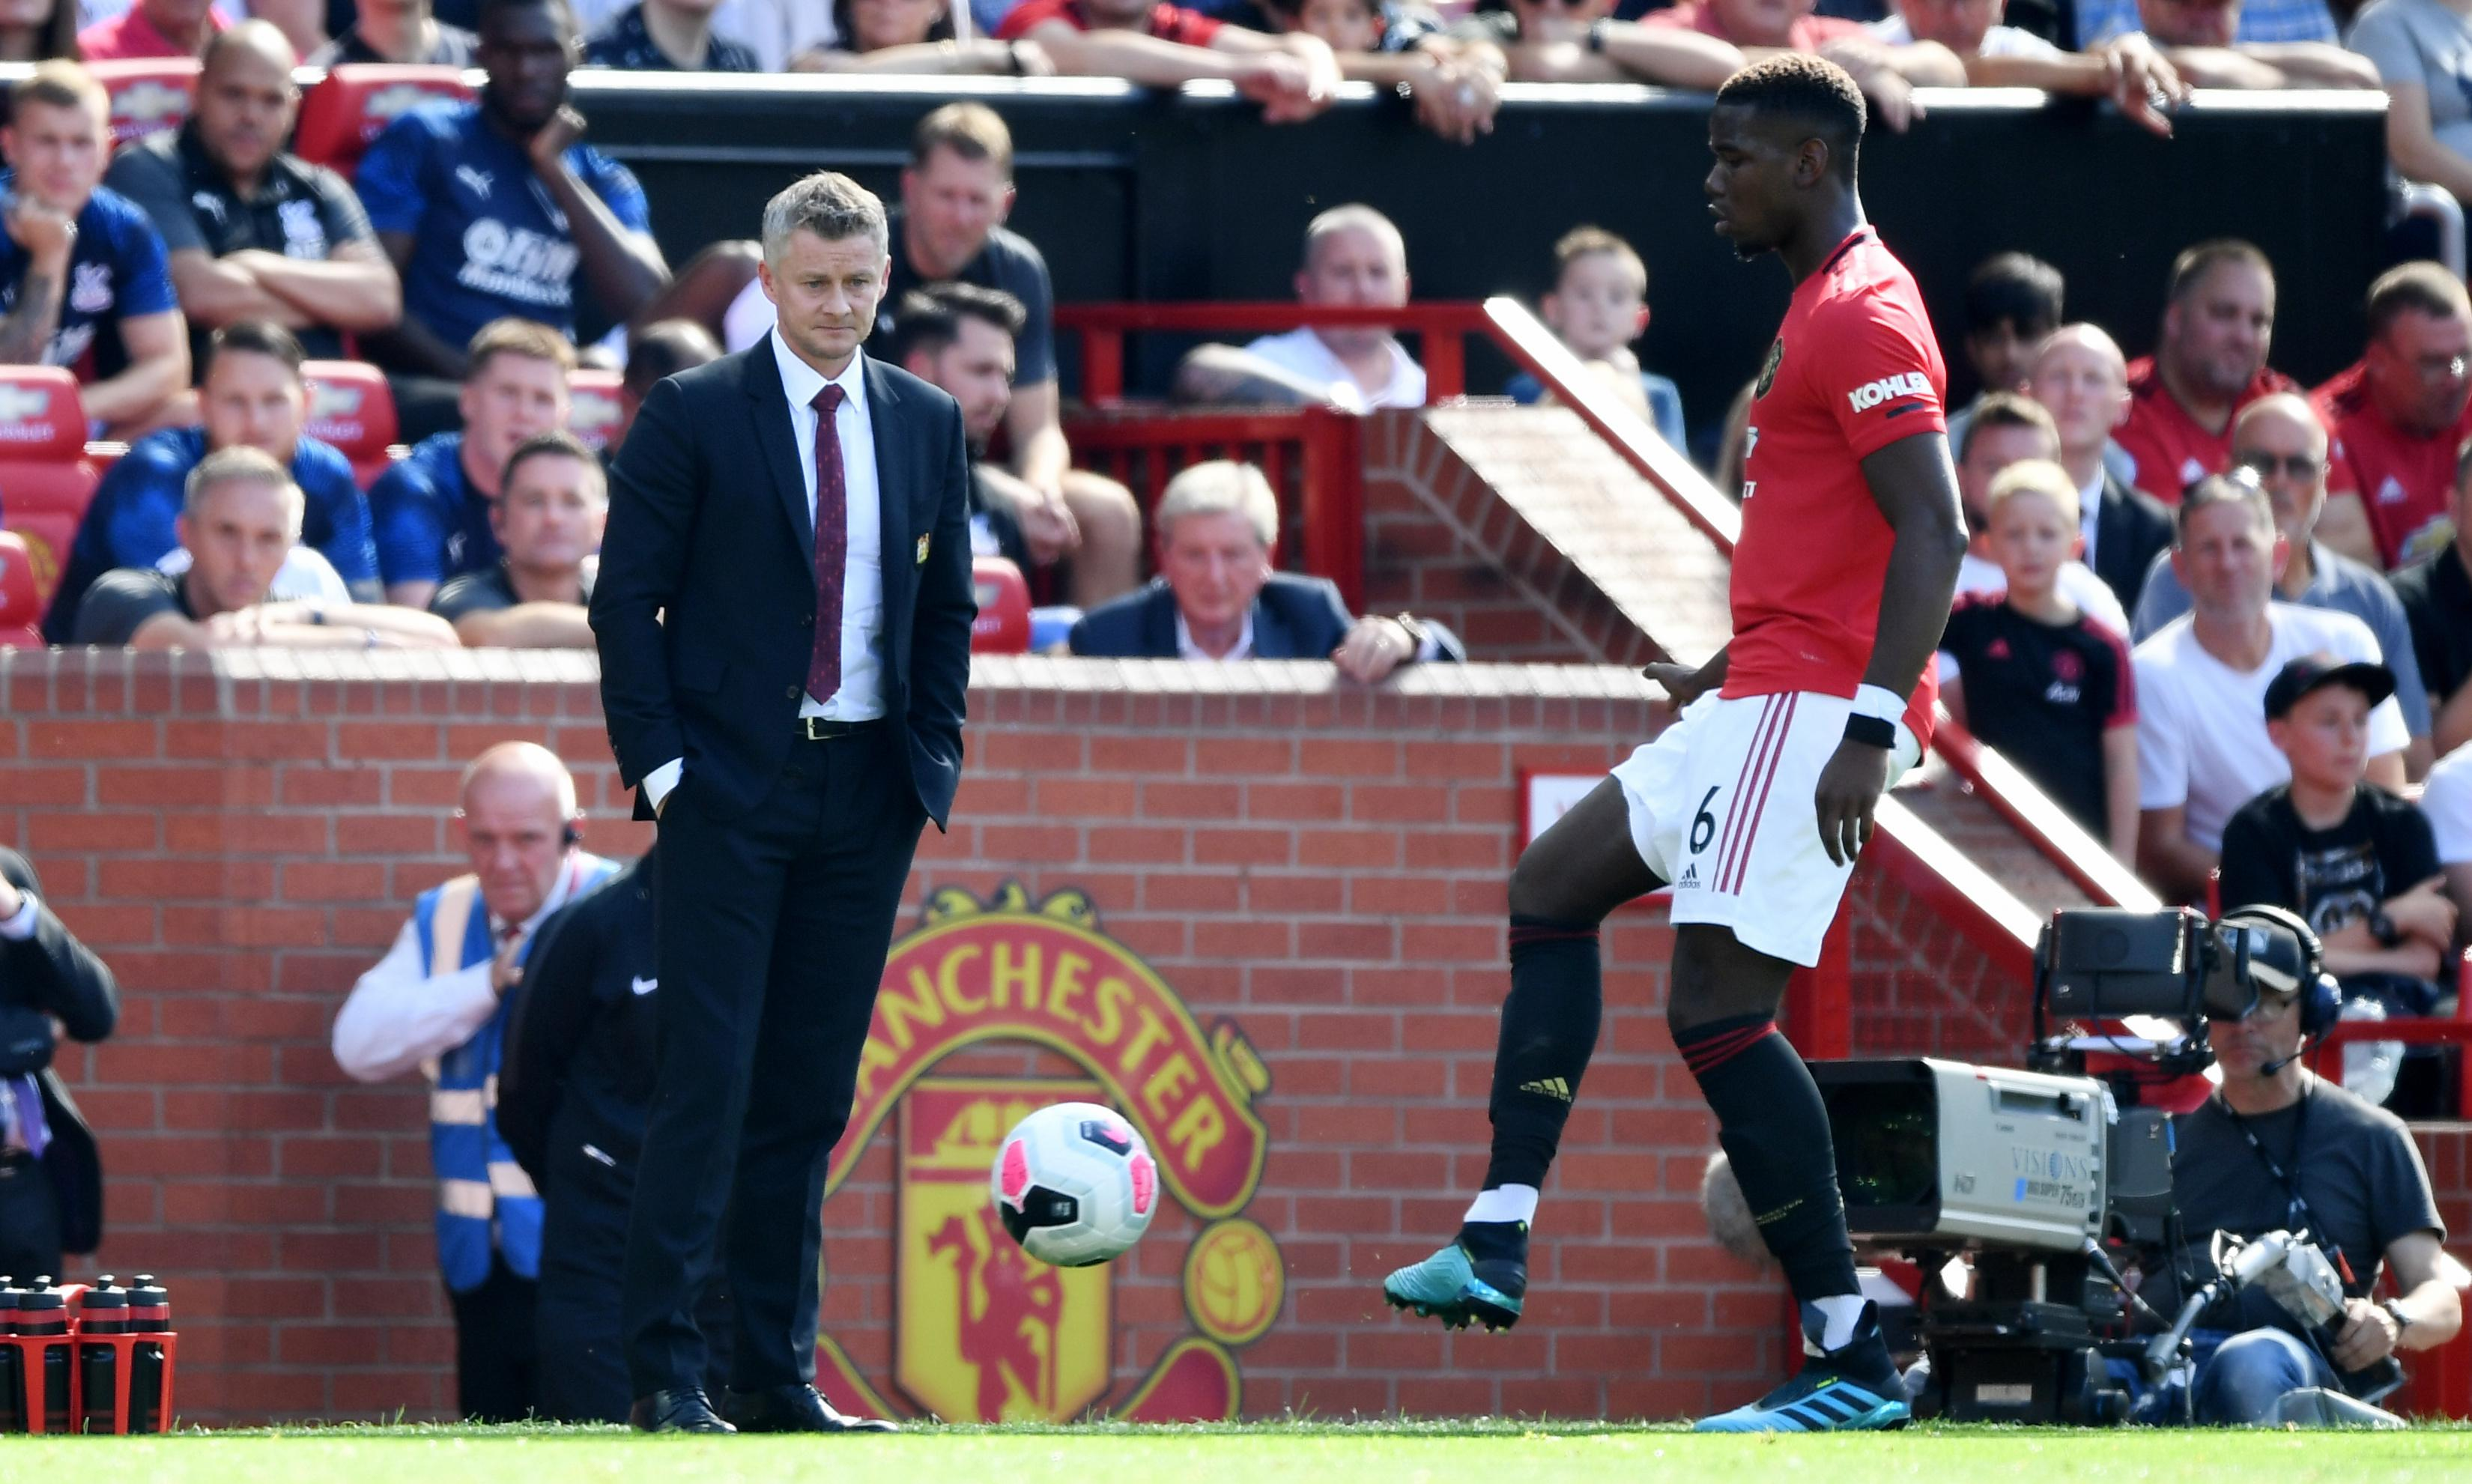 Pogba is at Manchester United for the long haul, says Ole Gunnar Solskjær